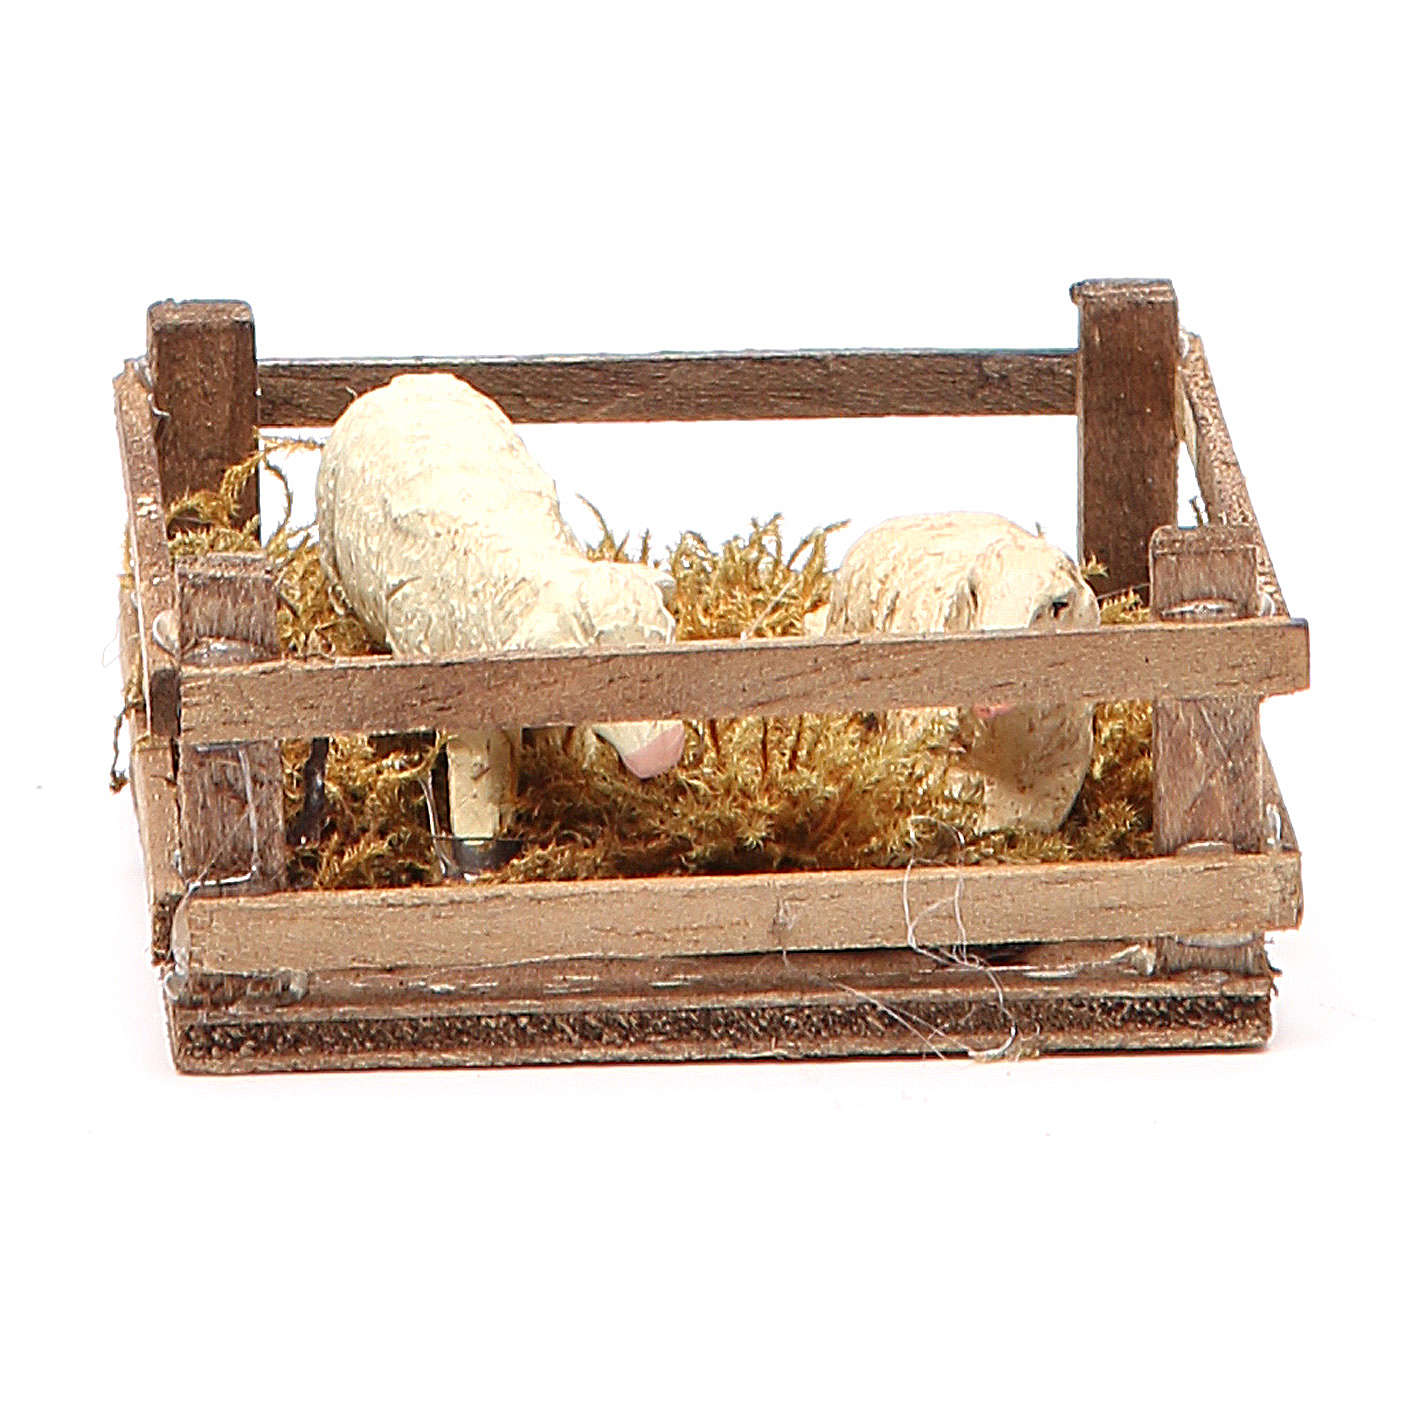 Corral with Sheeps 3x6,5x6,5 neapolitan Nativity 4